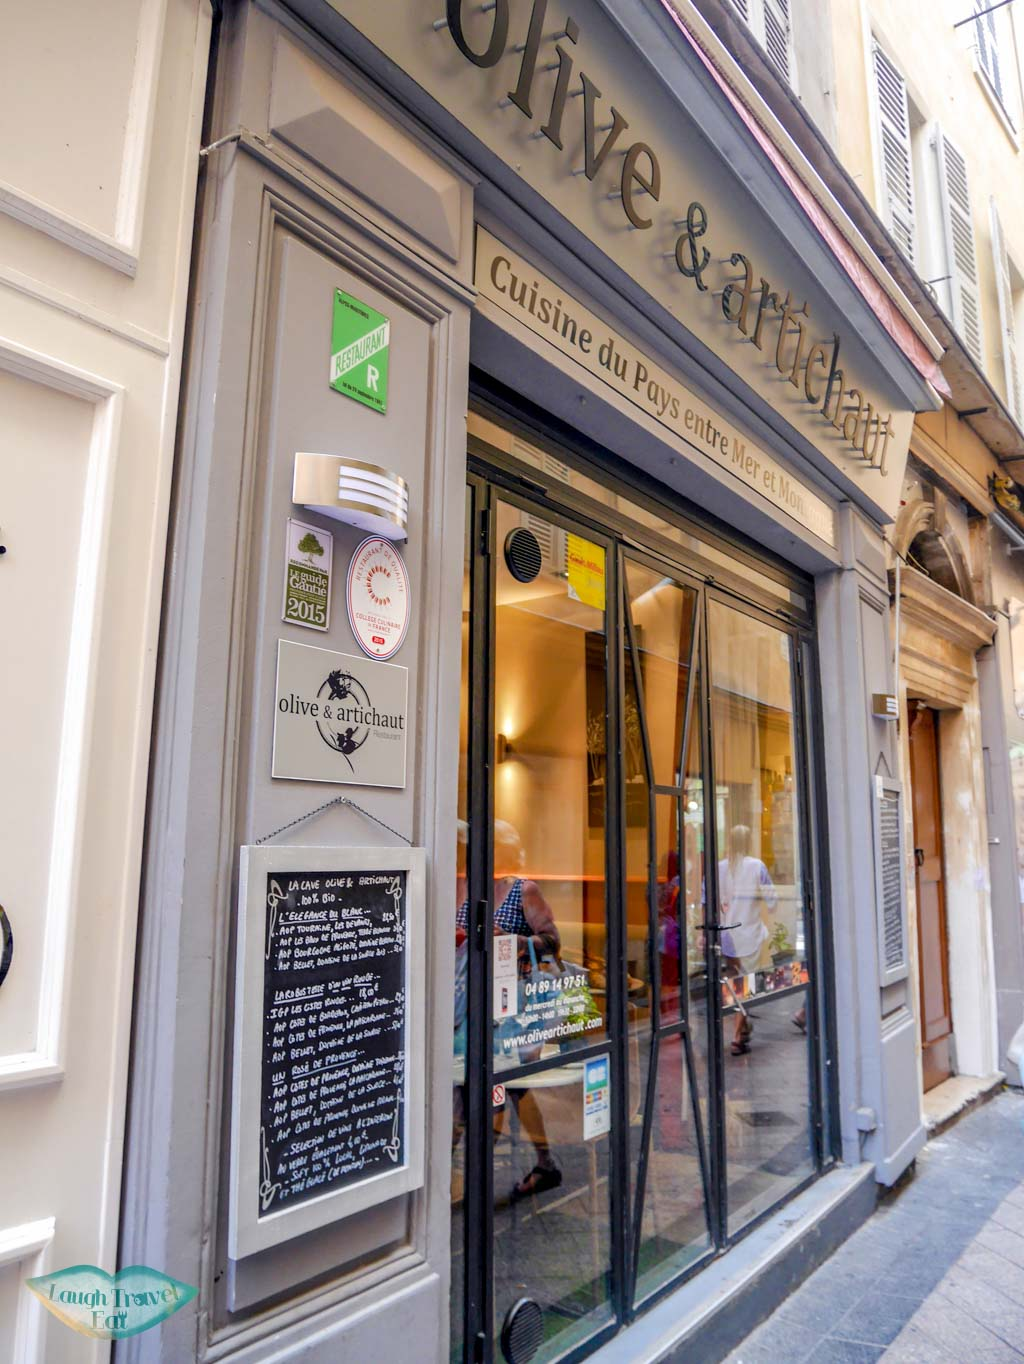 olive and artichaut restaurant old town nice south of france | Laugh Travel Eat